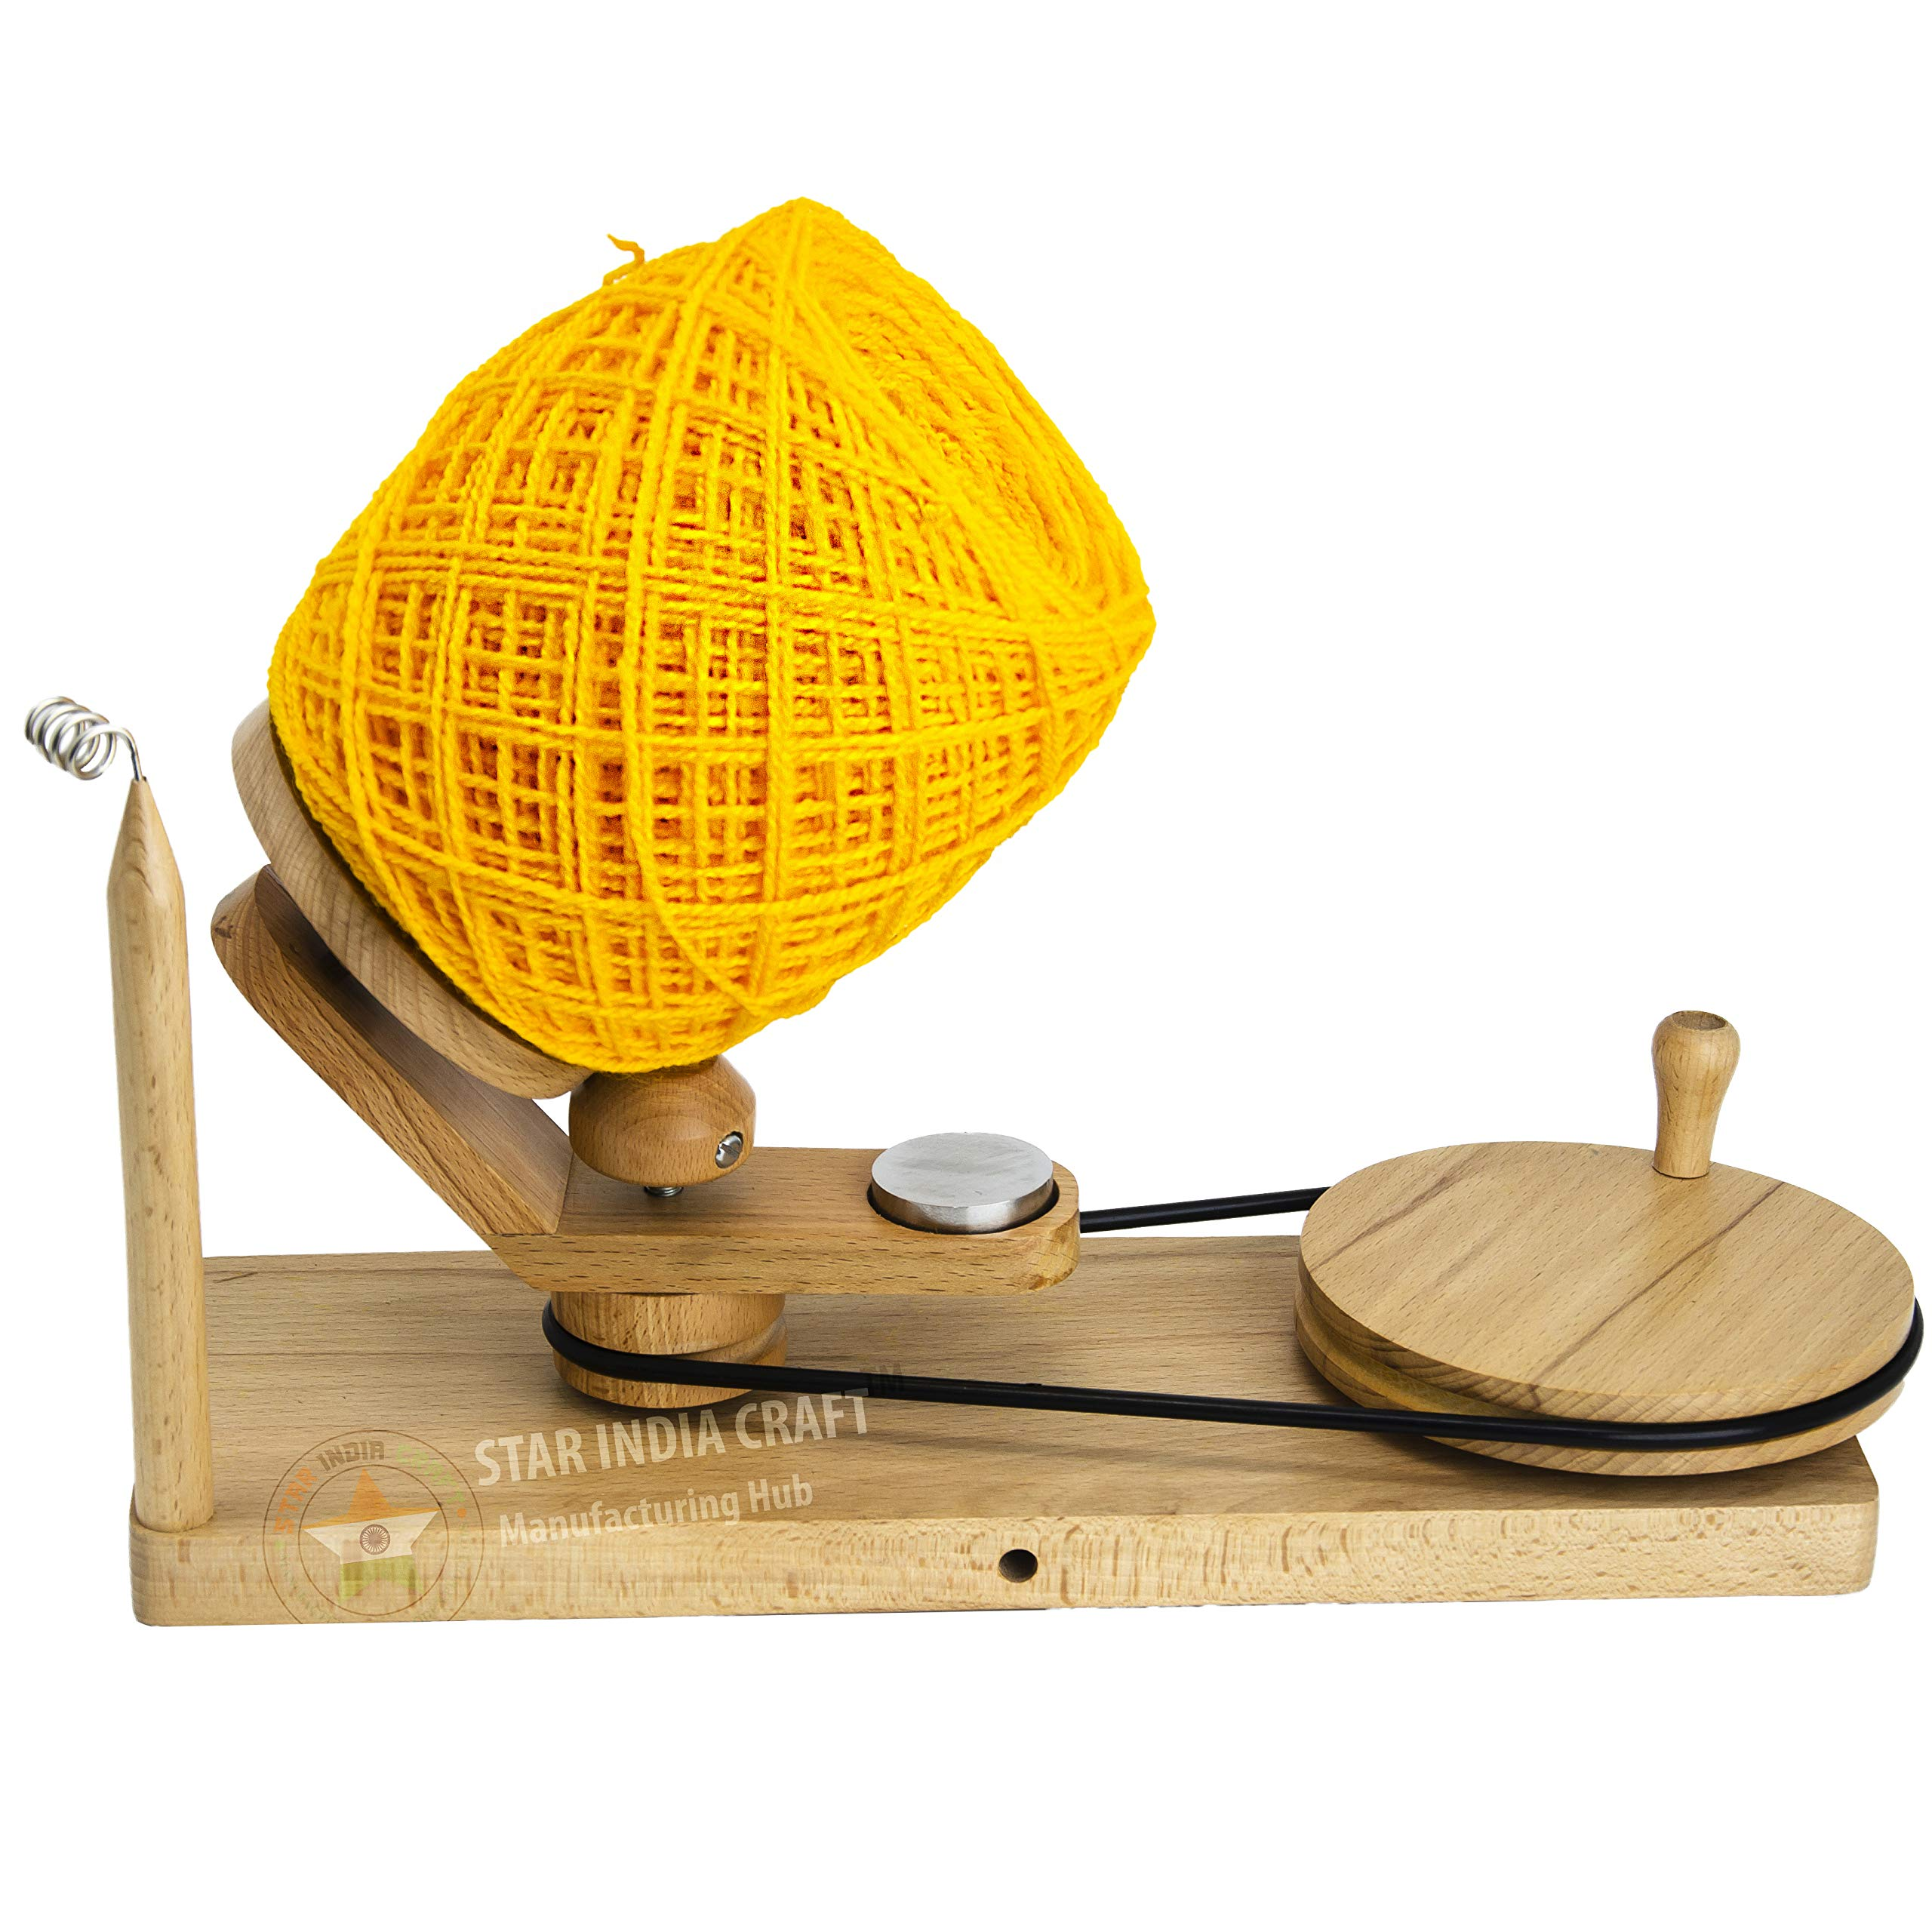 STAR INDIA CRAFT Handmade Center Pull Yarn Ball Winder - Natural Yarn Winder | Perfect DIY Knitter's Gifts for Knitting and Crocheting | Handcrafted Ball Winder (Yarn Winder, Standard)